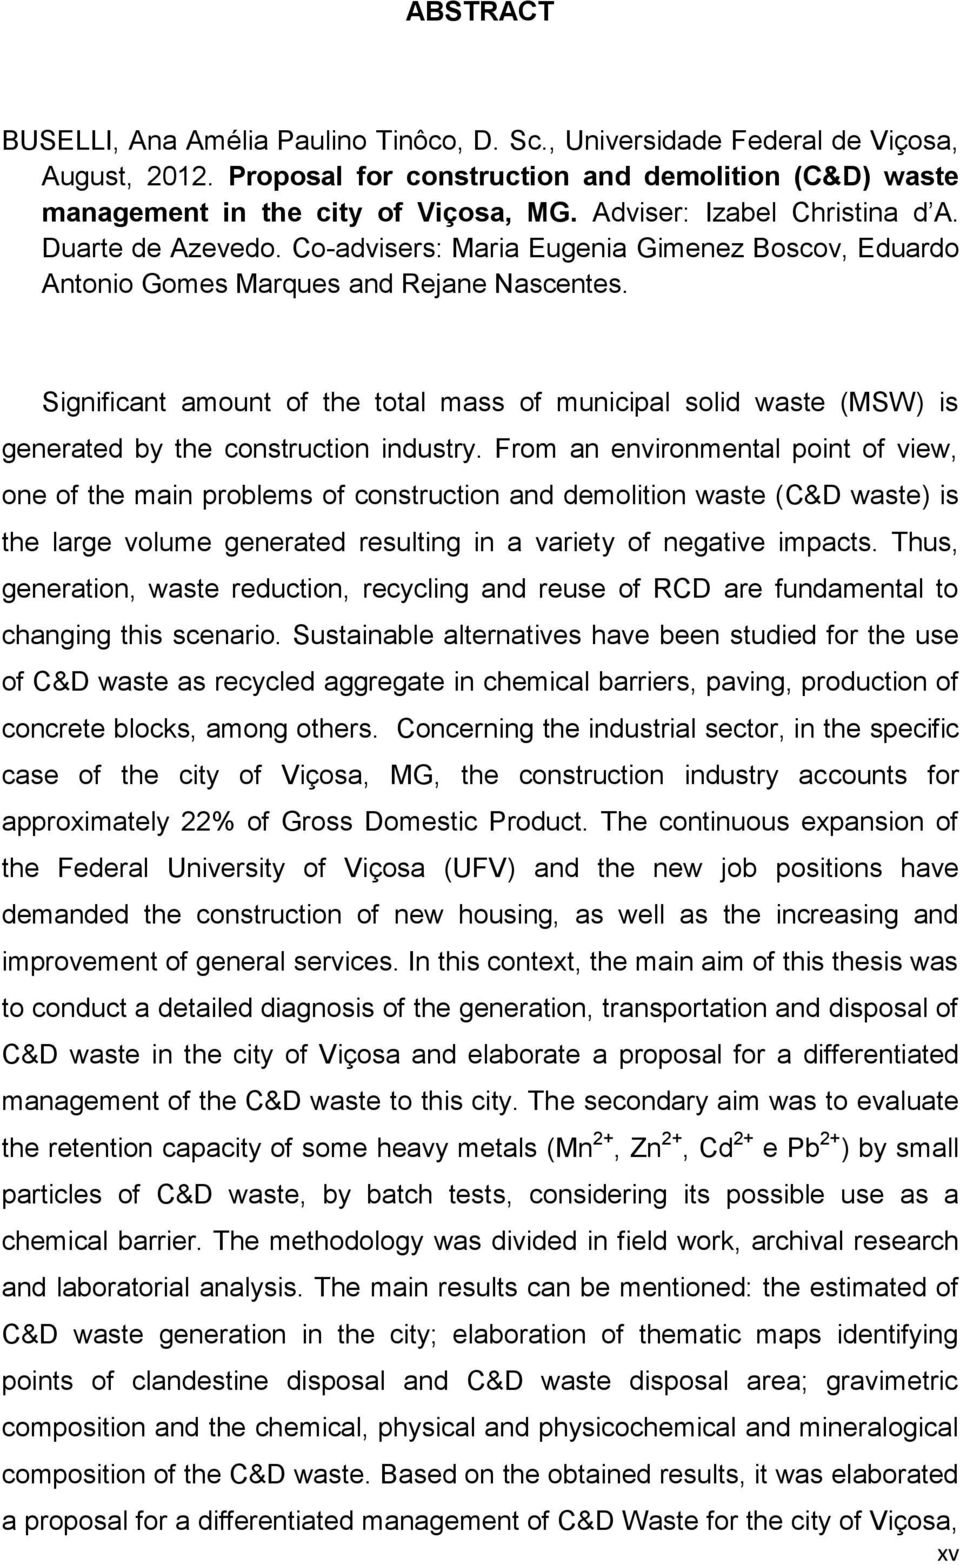 Significant amount of the total mass of municipal solid waste (MSW) is generated by the construction industry.